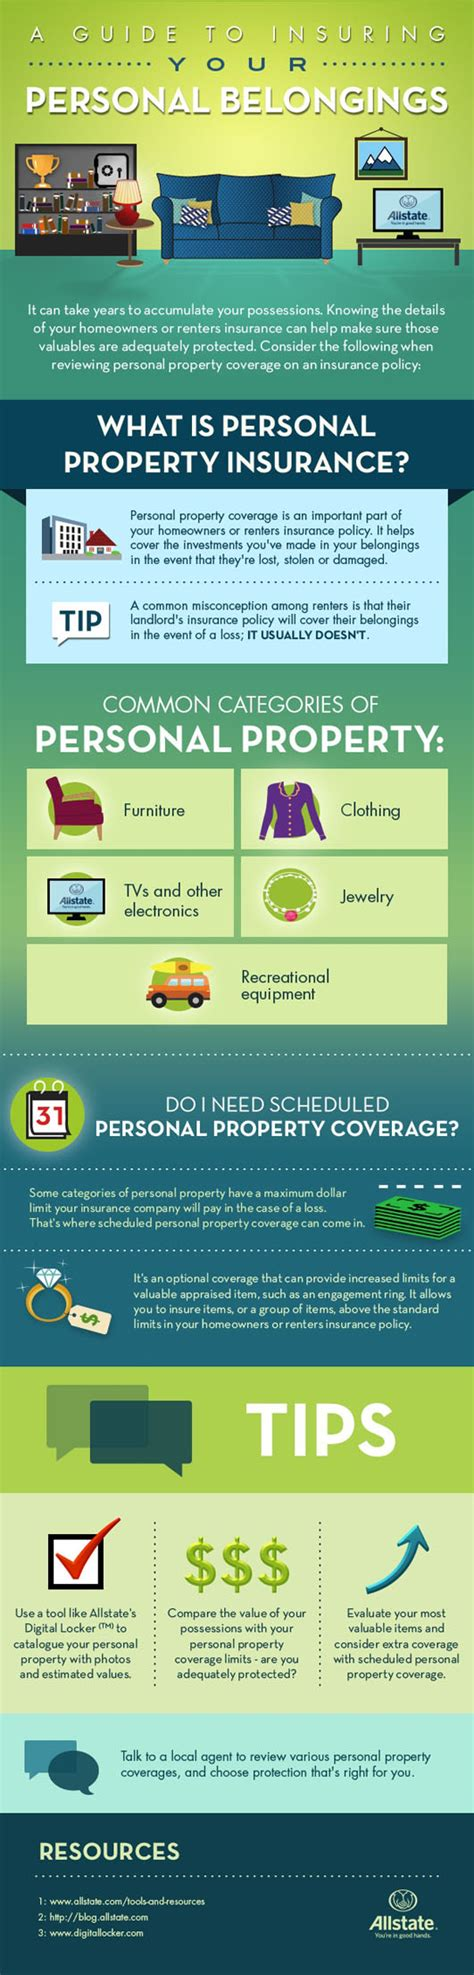 Infographic Insurance For Belongings  Allstate. Strategic Health Solutions Institutes Of Art. Incorporate In Hong Kong Sideload Kindle Fire. Kaplan University School Of Nursing. Especializacion En Gerencia De Proyectos. San Francisco Estate Planning Council. Palo Alto Air Conditioning Pool Deck Builder. Christmas Cards Custom Final Expense Planning. Vet Tech Yearly Salary Hp Laptop Wont Turn On